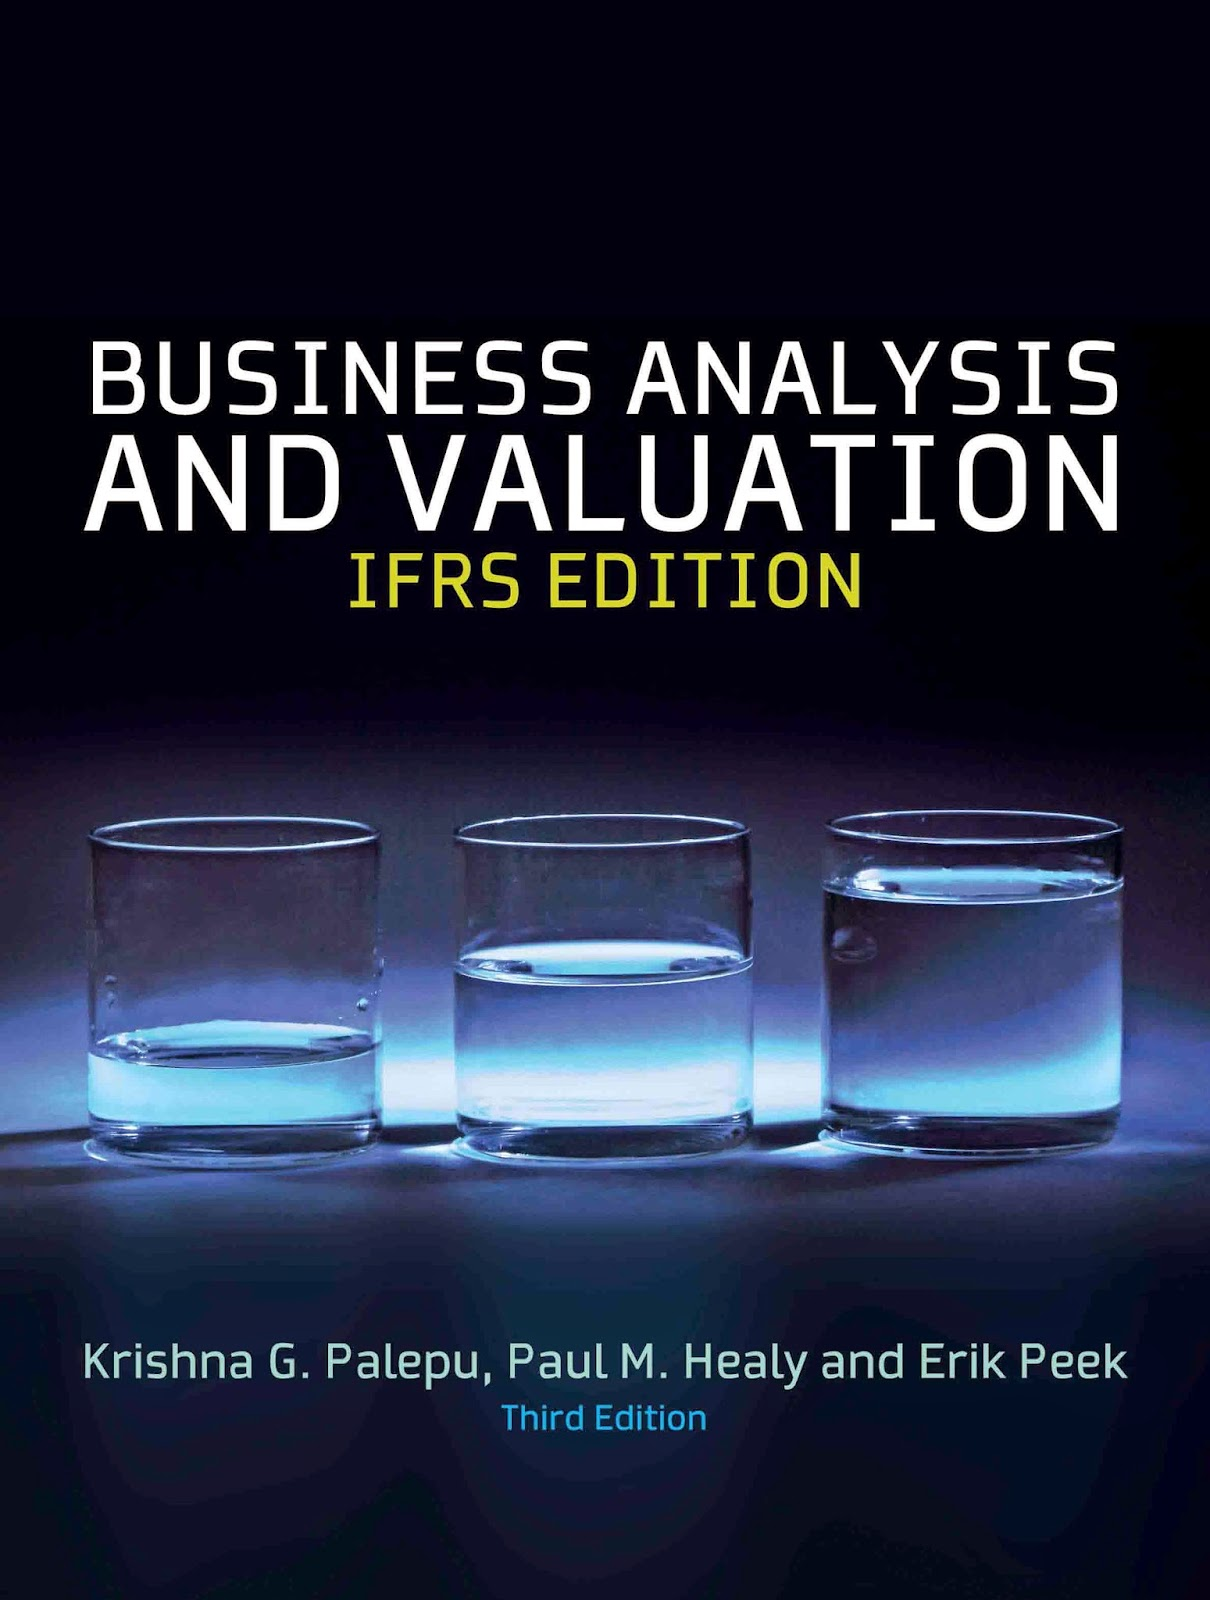 business analysis valuation Sum-of-the-parts valuation discounted cash flow analysis (dcf) $ 2 why is valuation important acquisitions: how much should we pay for the company divestitures: how much should we sell our company for valuation sell-side research: should our clients buy, sell or hold a given stock (fixed income.